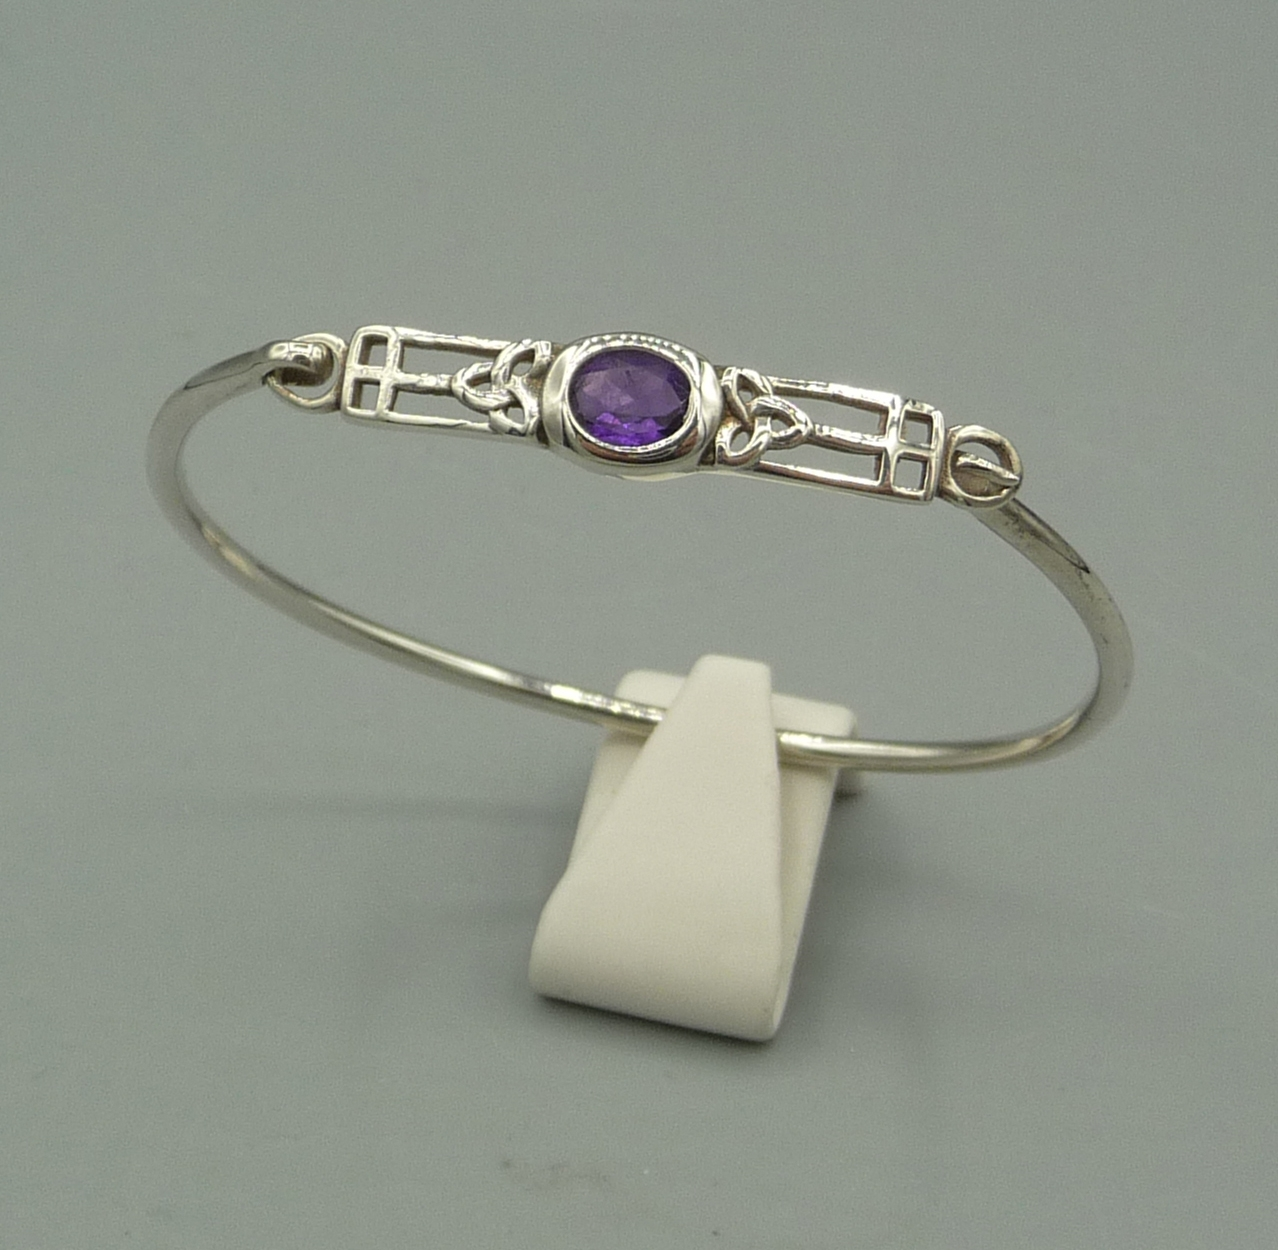 Silver 925 Sterling Mackintosh bangle with Amethyst